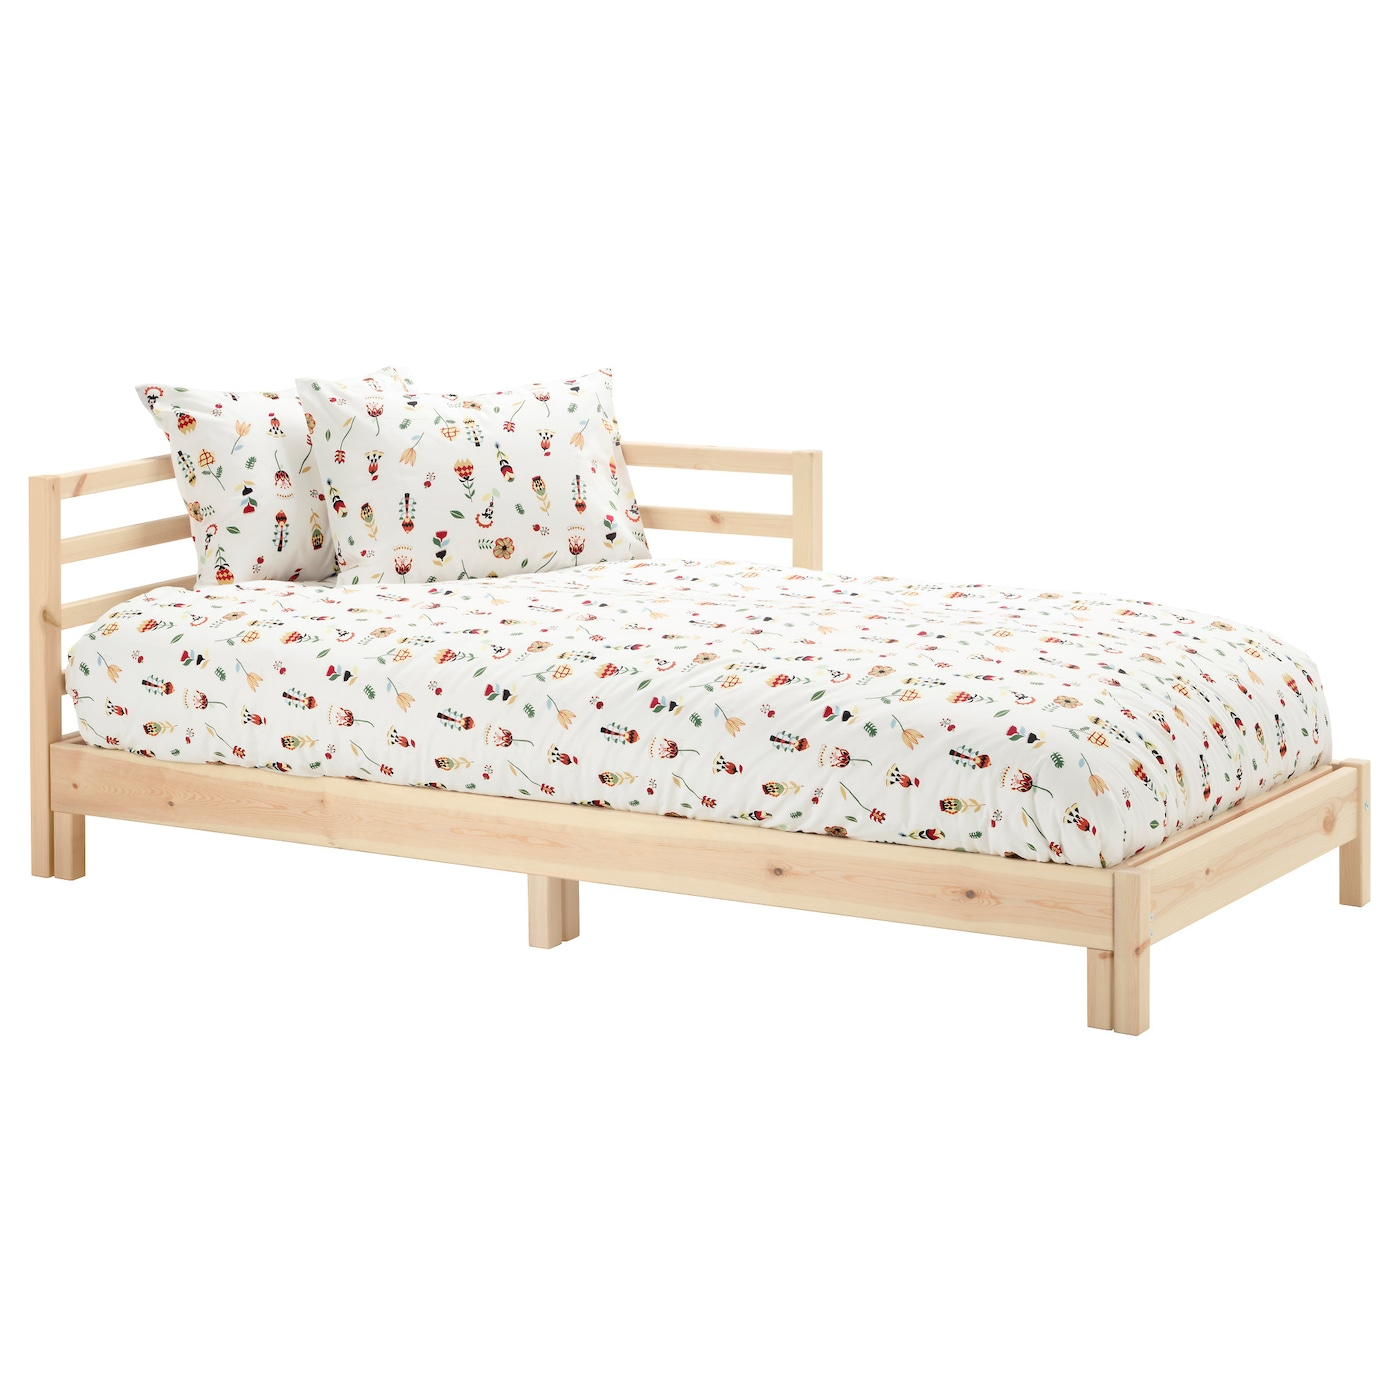 Ikea Tarva Day Bed Frame The Backrest Mounts On The Right Or The Left Side